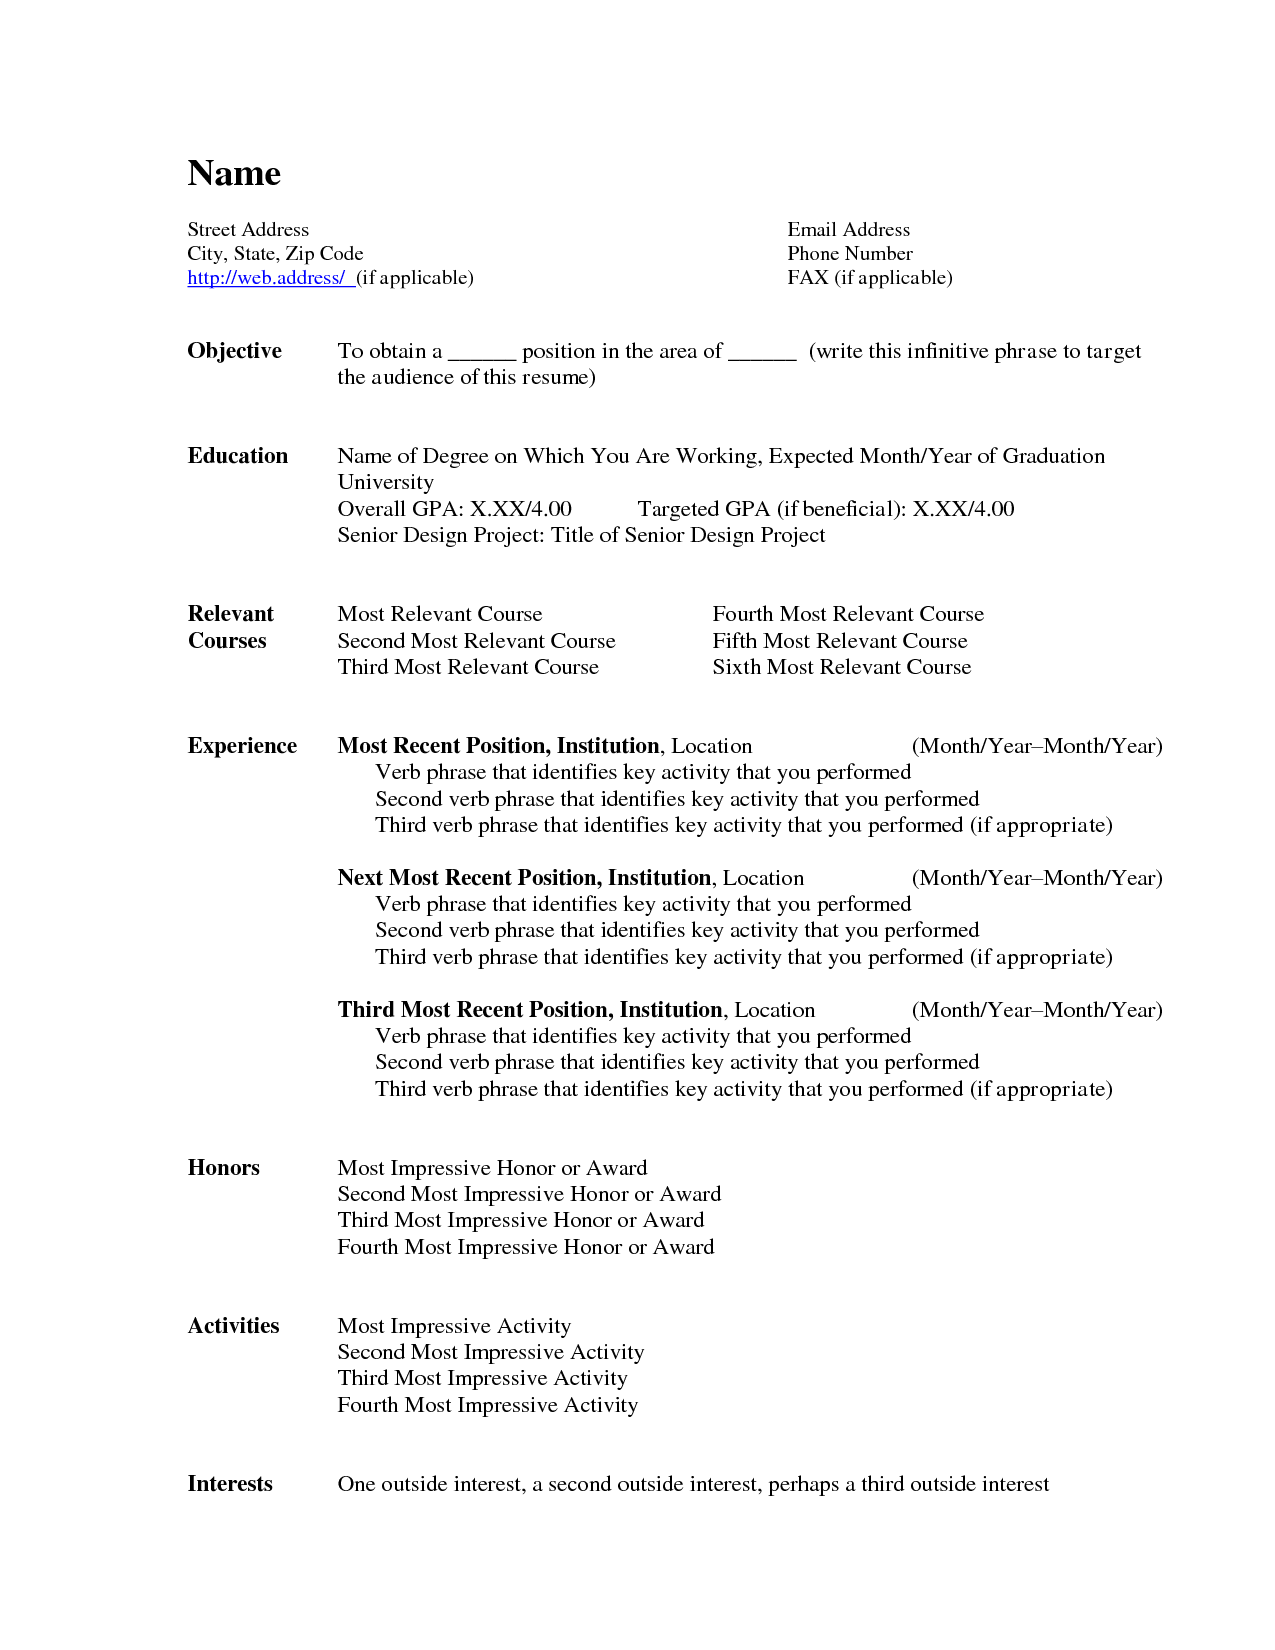 microsoft word resume template builder http job - Resume Microsoft Word Template